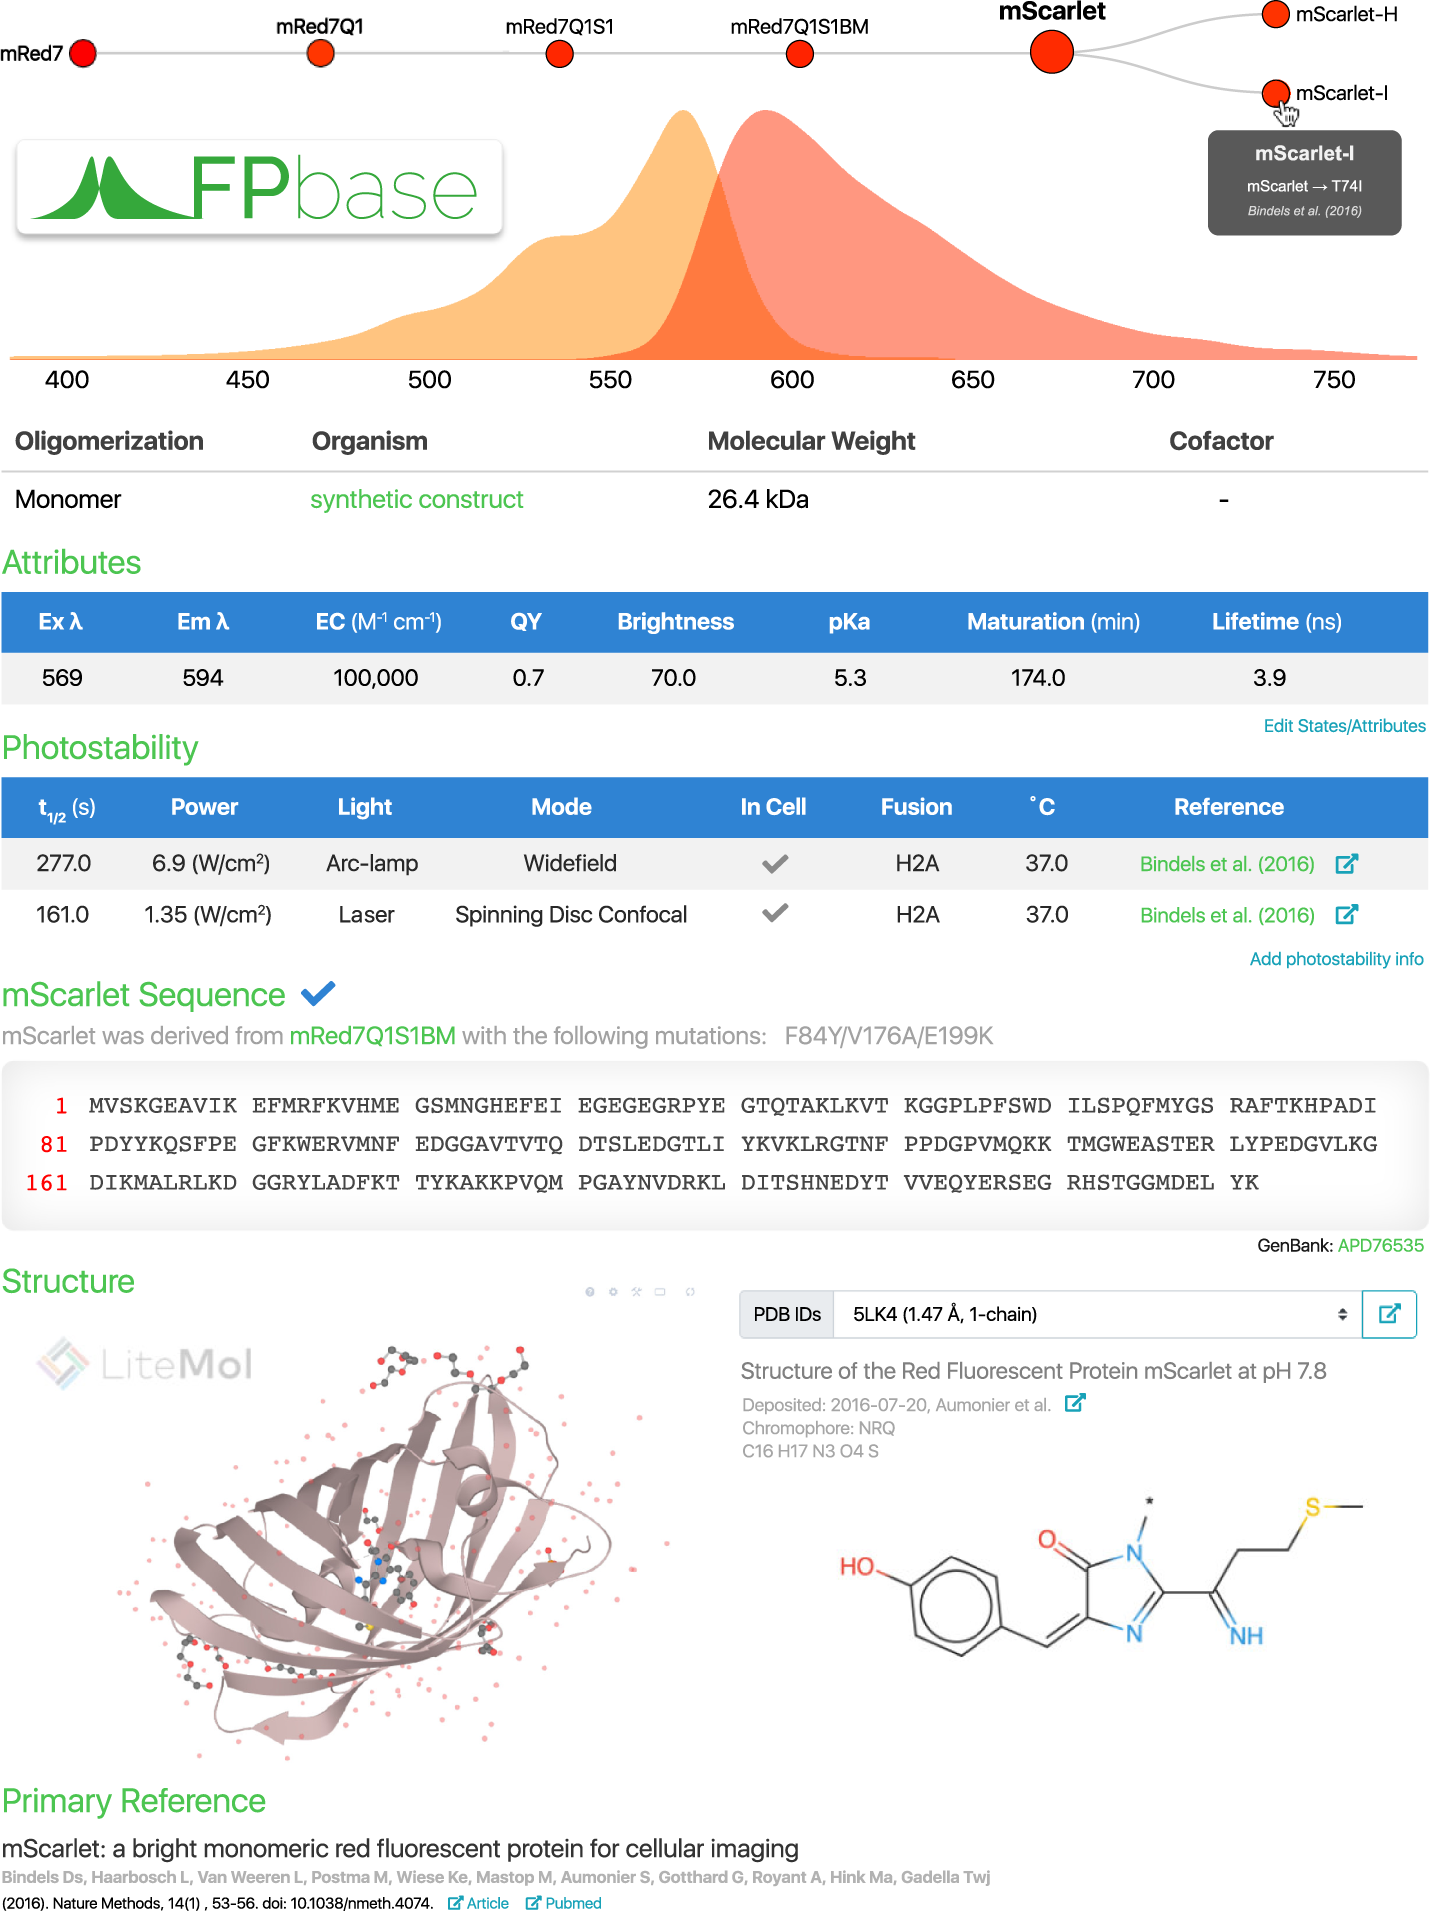 FPbase: a community-editable fluorescent protein database